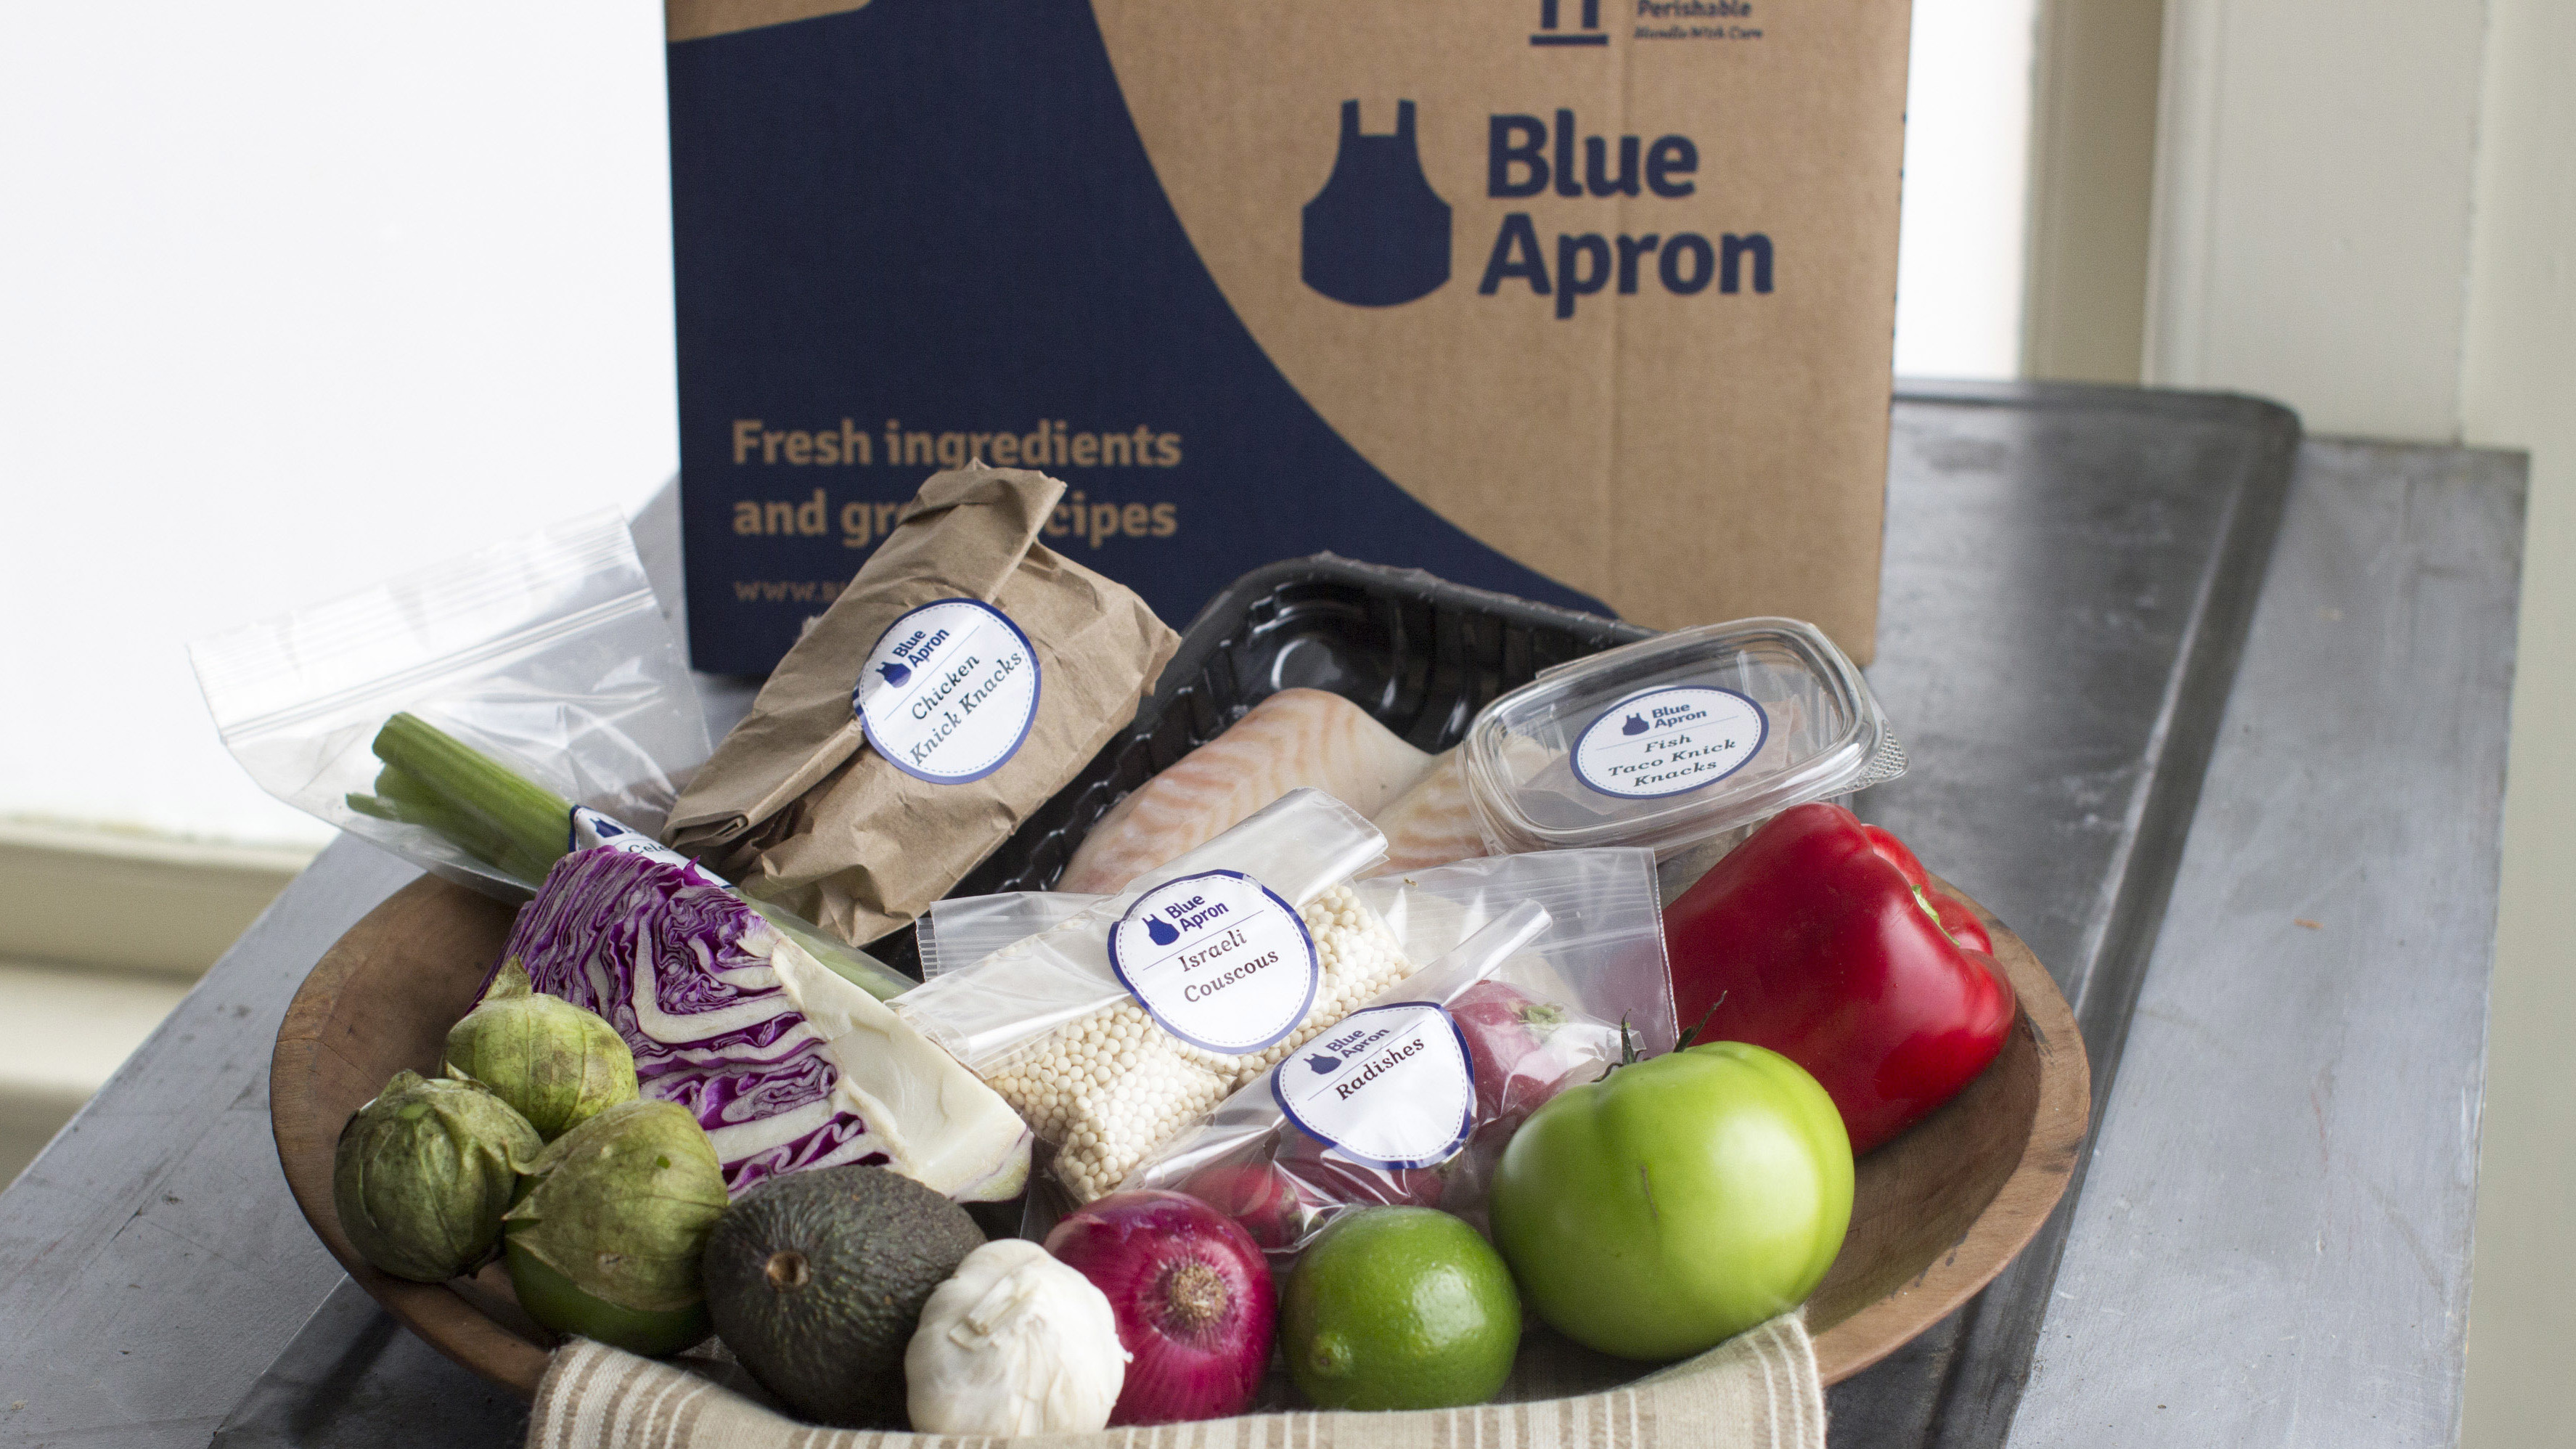 Blue apron lawsuit